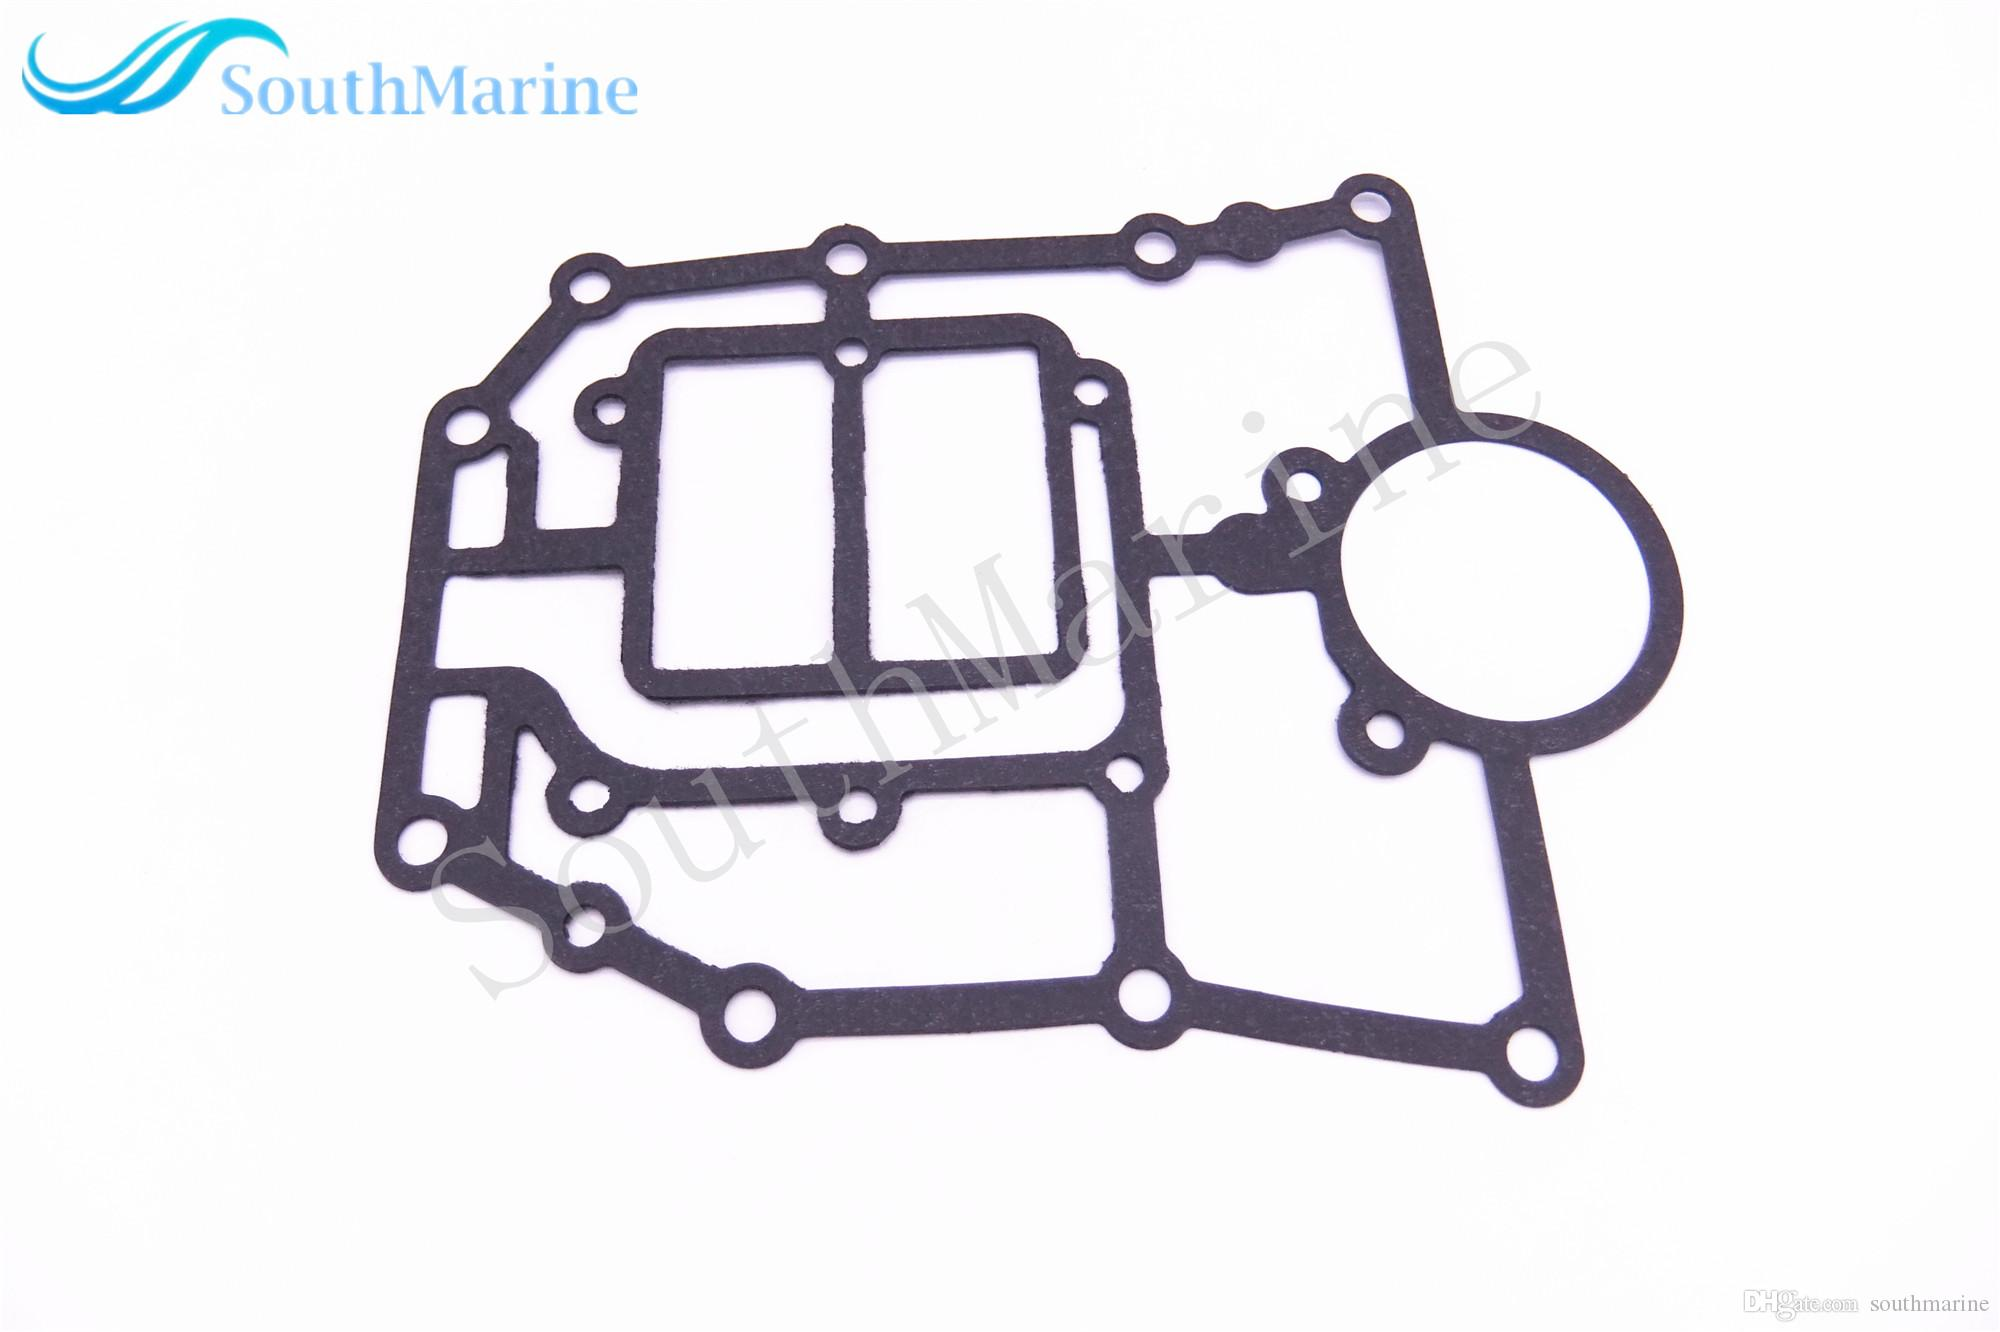 hight resolution of 2019 11433 94412 boat motor gasket under oil seal for suzuki 40hp dt40 outboard engine11433 94412 boat motor gasket under oil seal for suzuki 40h from